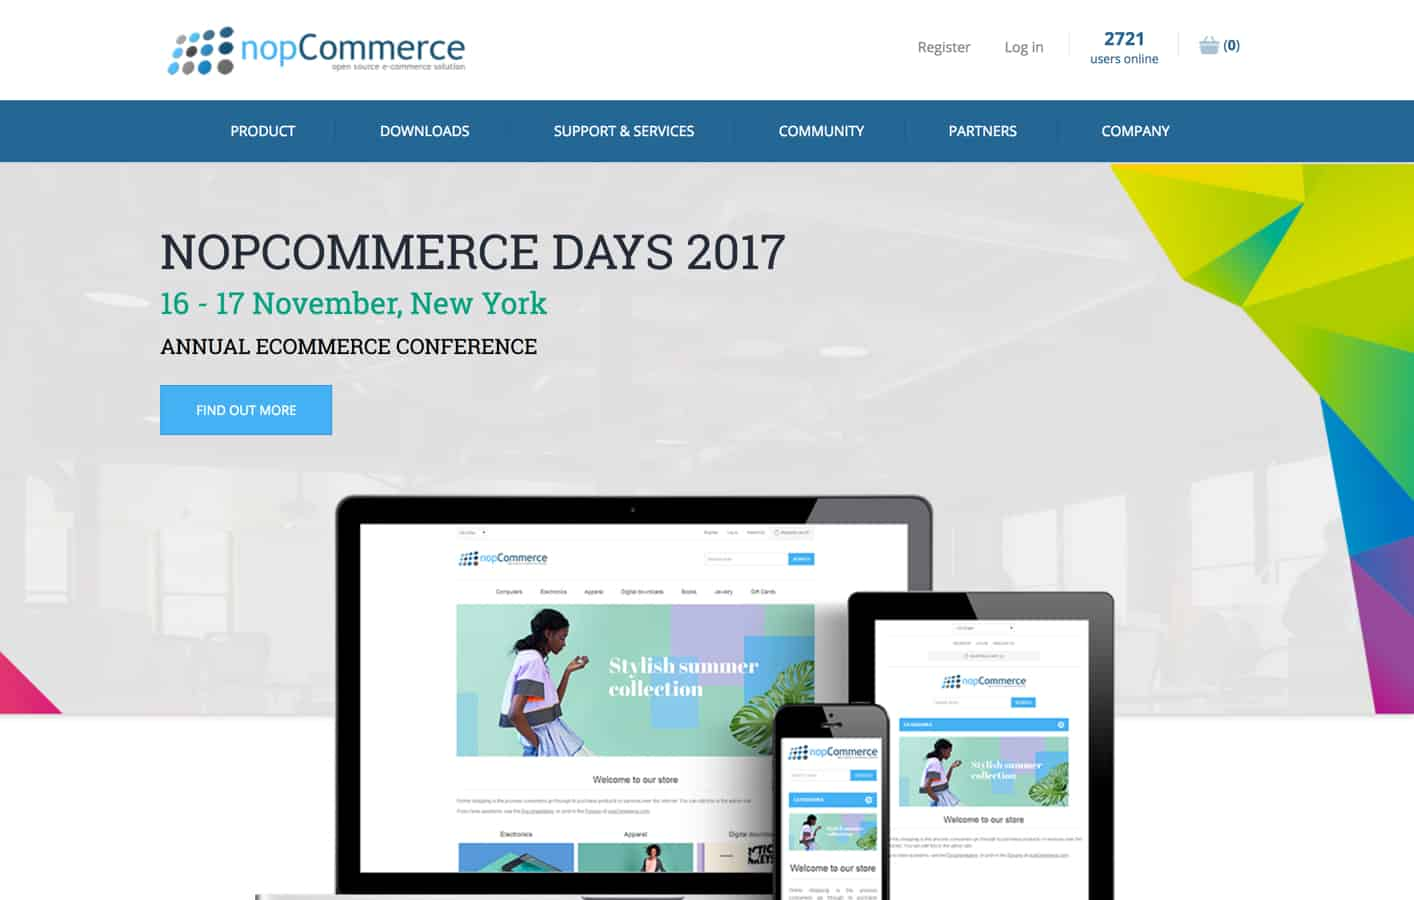 nopCommerce Review: Free E-Commerce Platform  Can They Take On